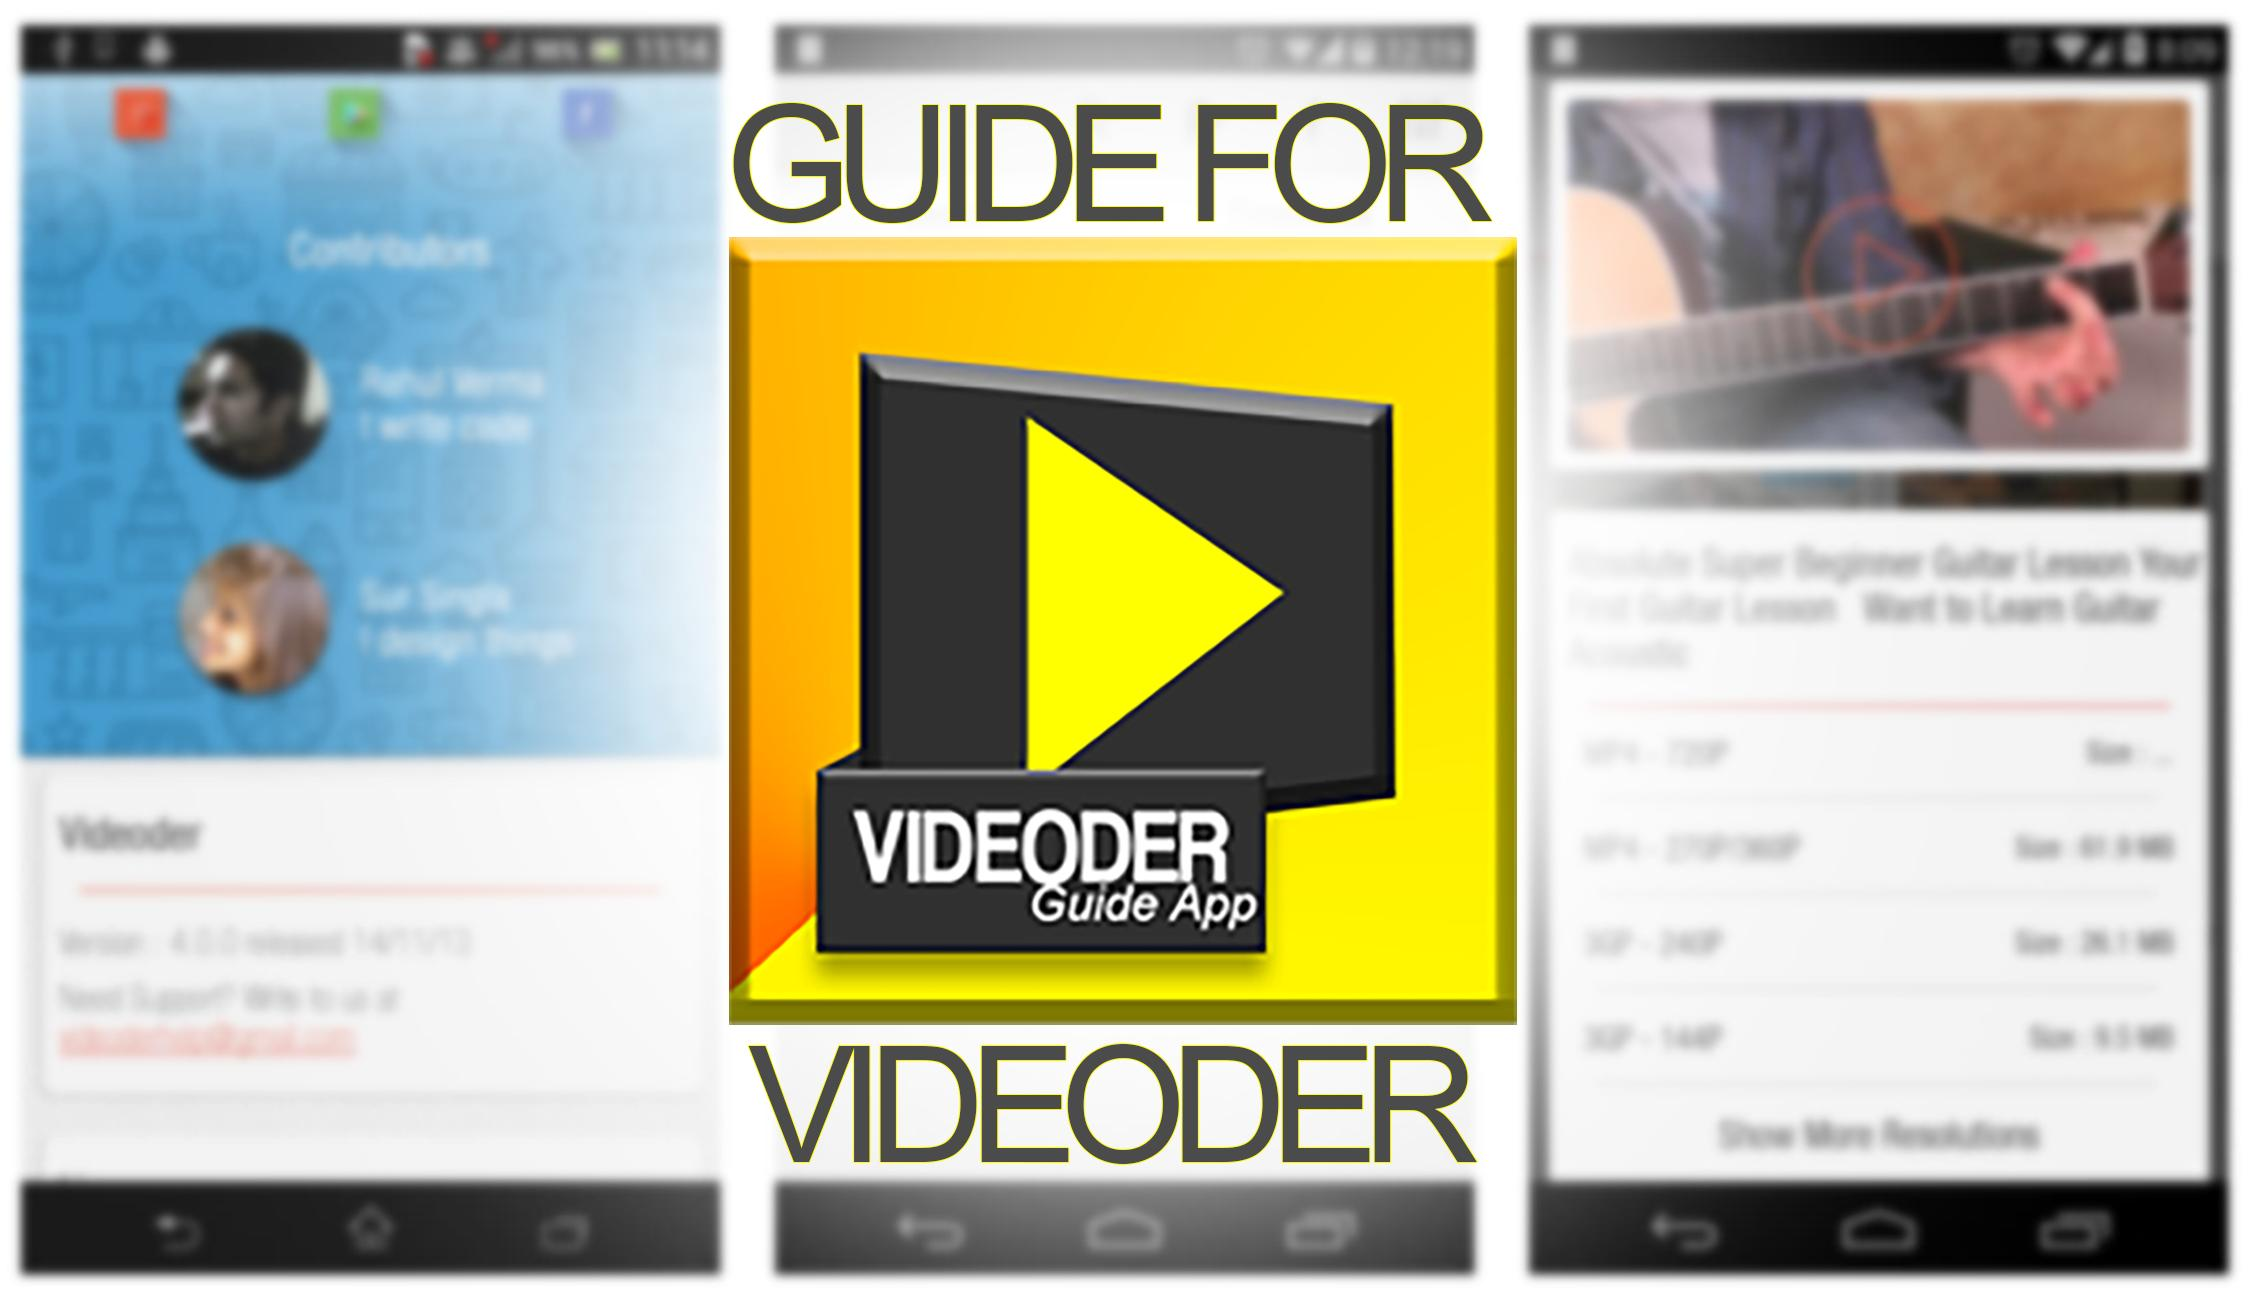 Guide for Videoder for Android - APK Download